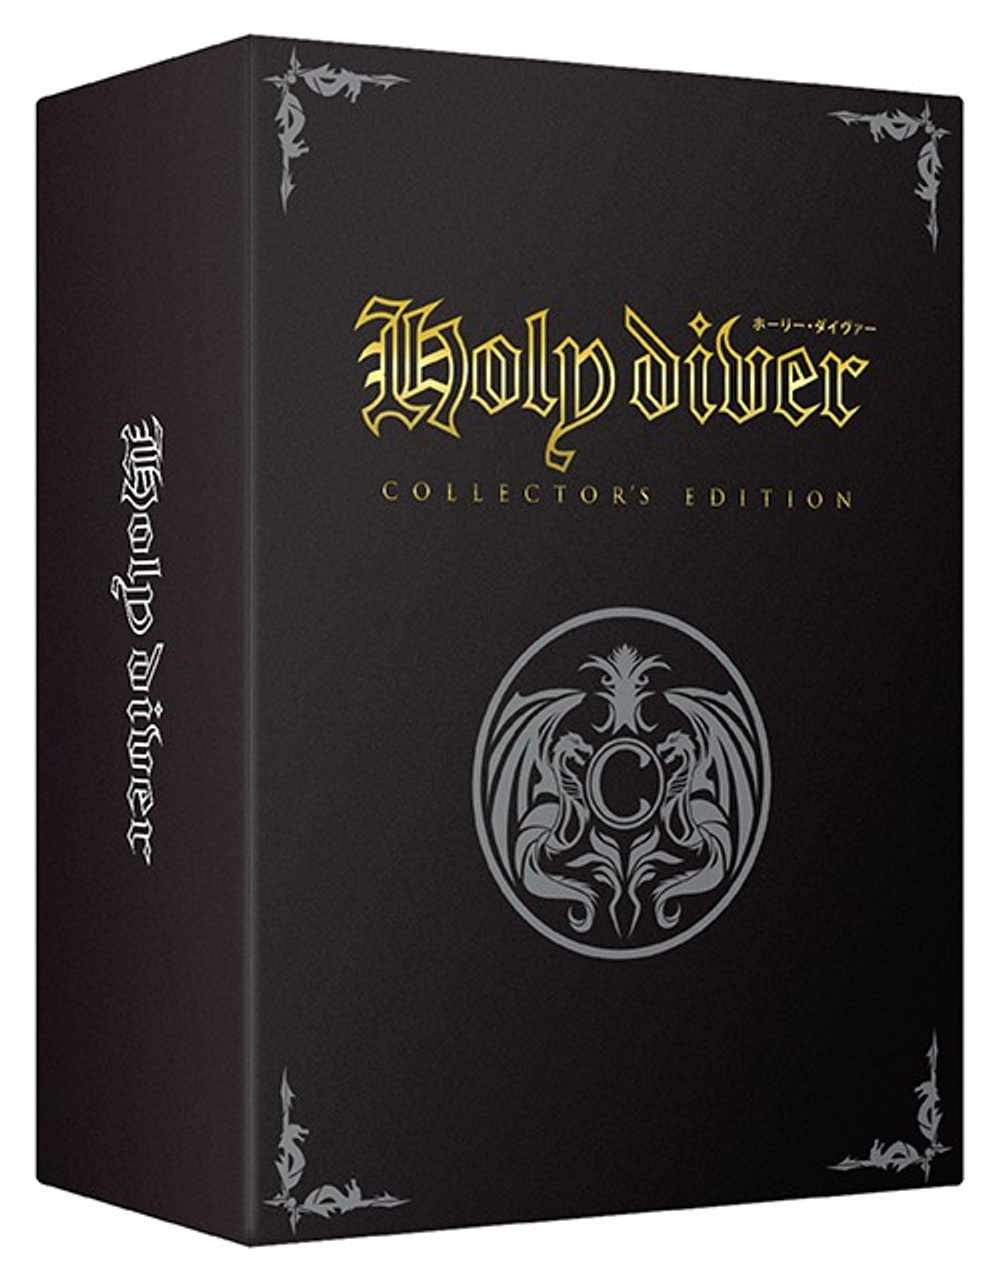 Nintendo NES Holy Diver Collector's Edition Video Game 8-Bit Cartridge